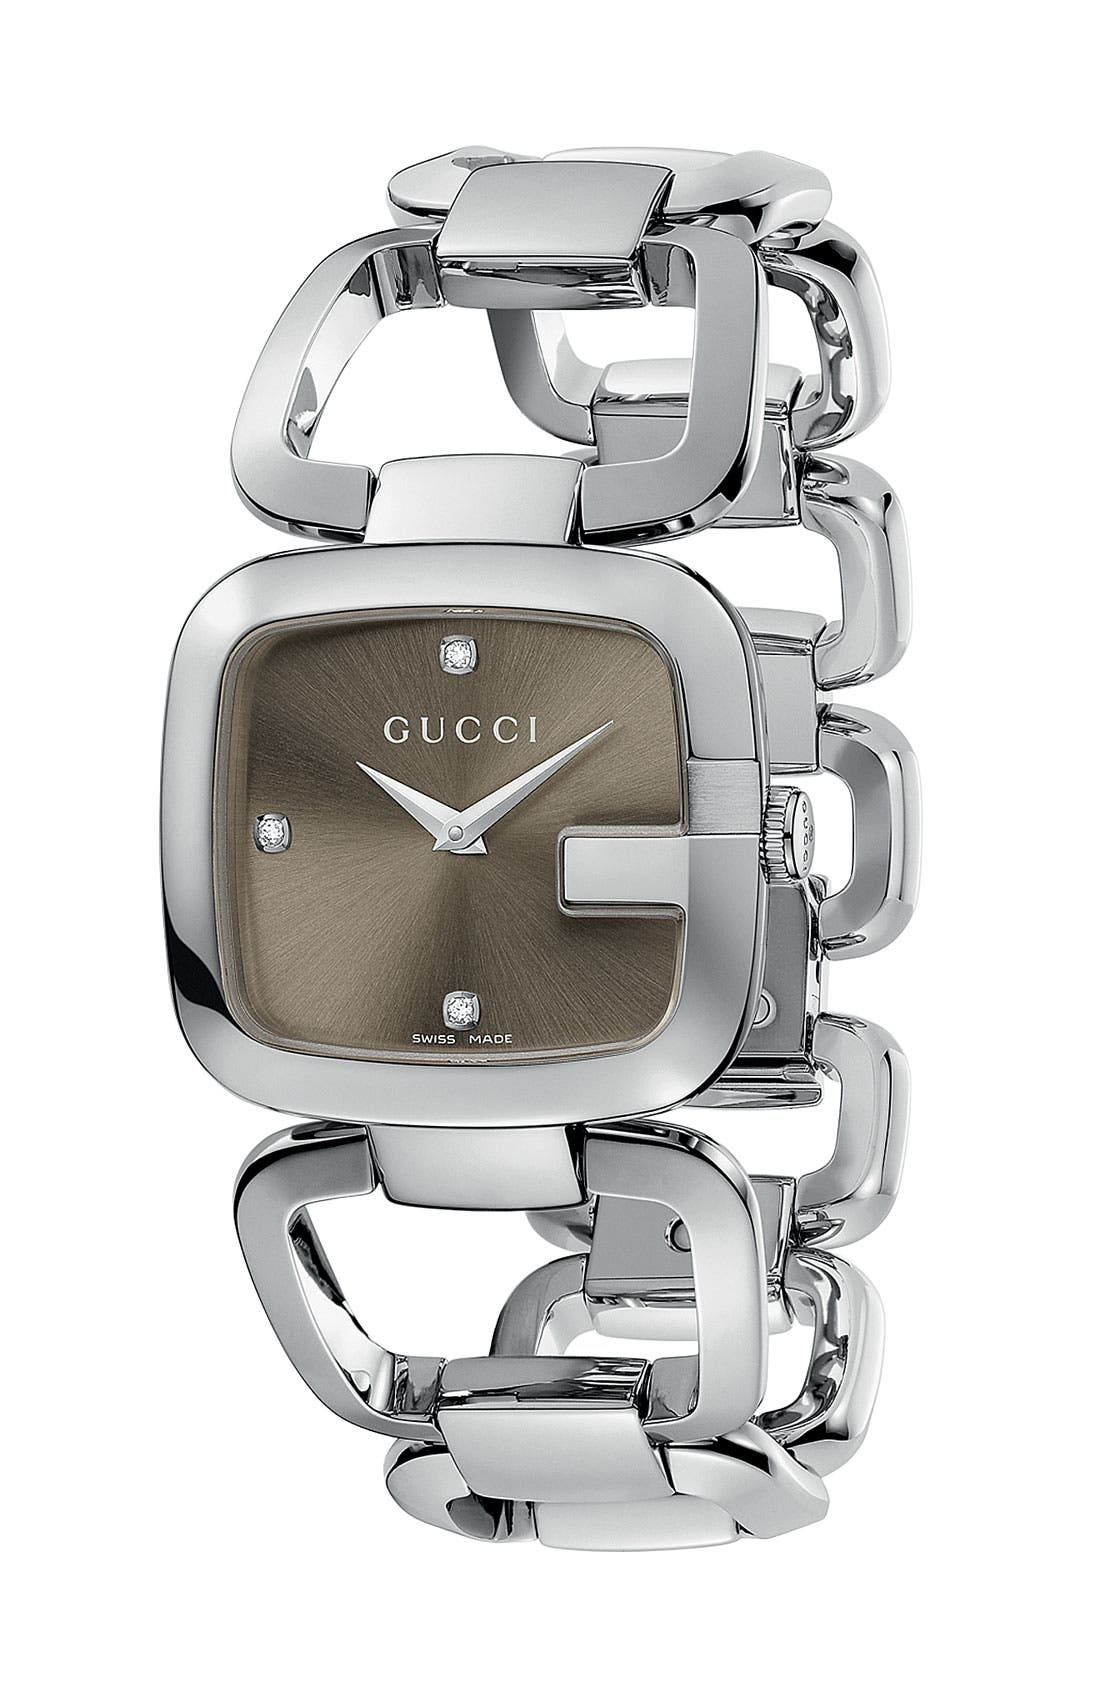 Main Image - Gucci Bracelet Watch, 32mm x 30mm